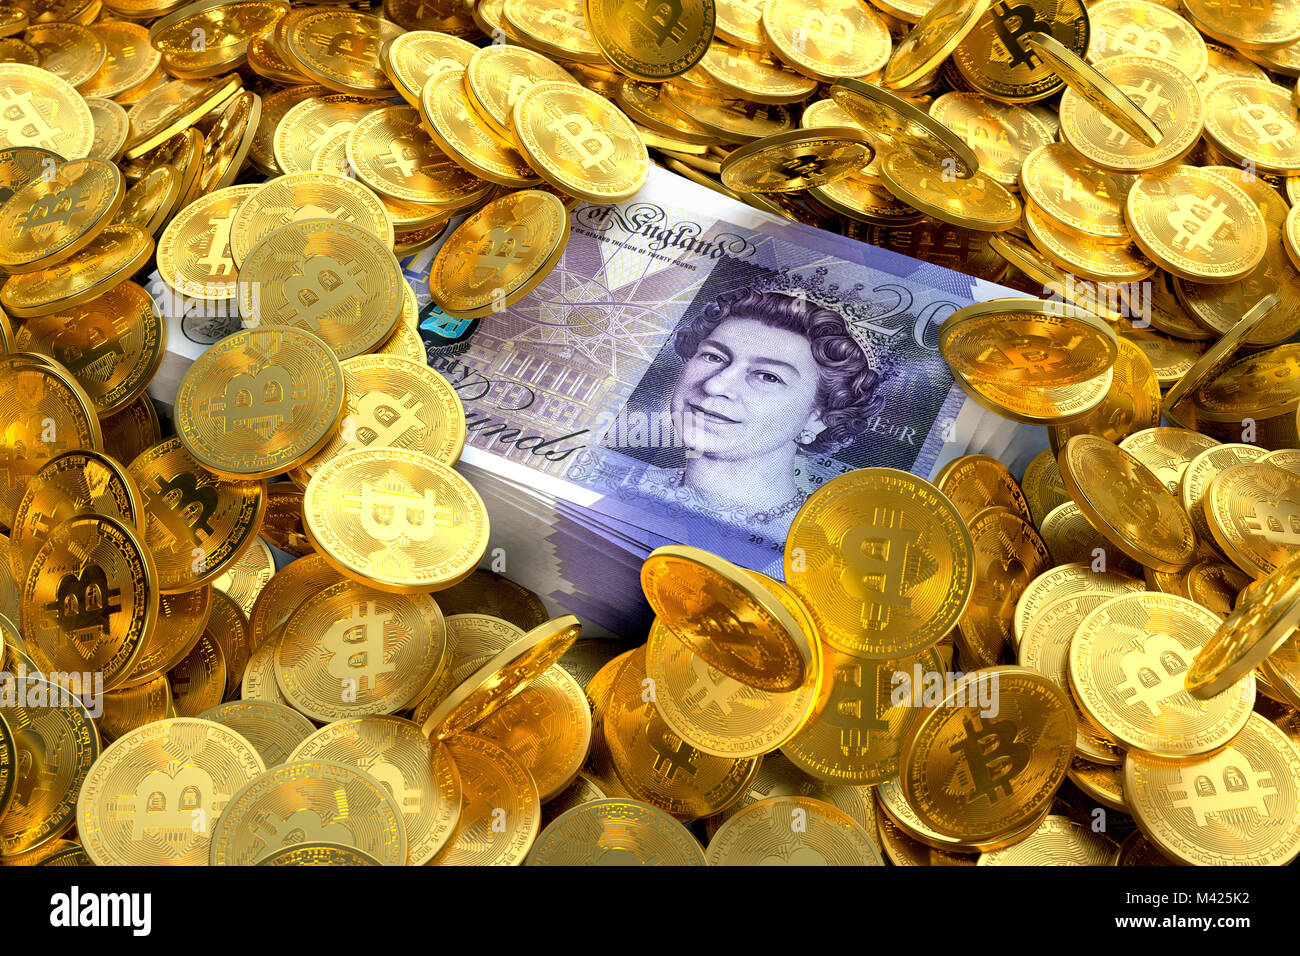 Stack of GBP pound sterling notes surrounded by Bitcoins - Stock Image